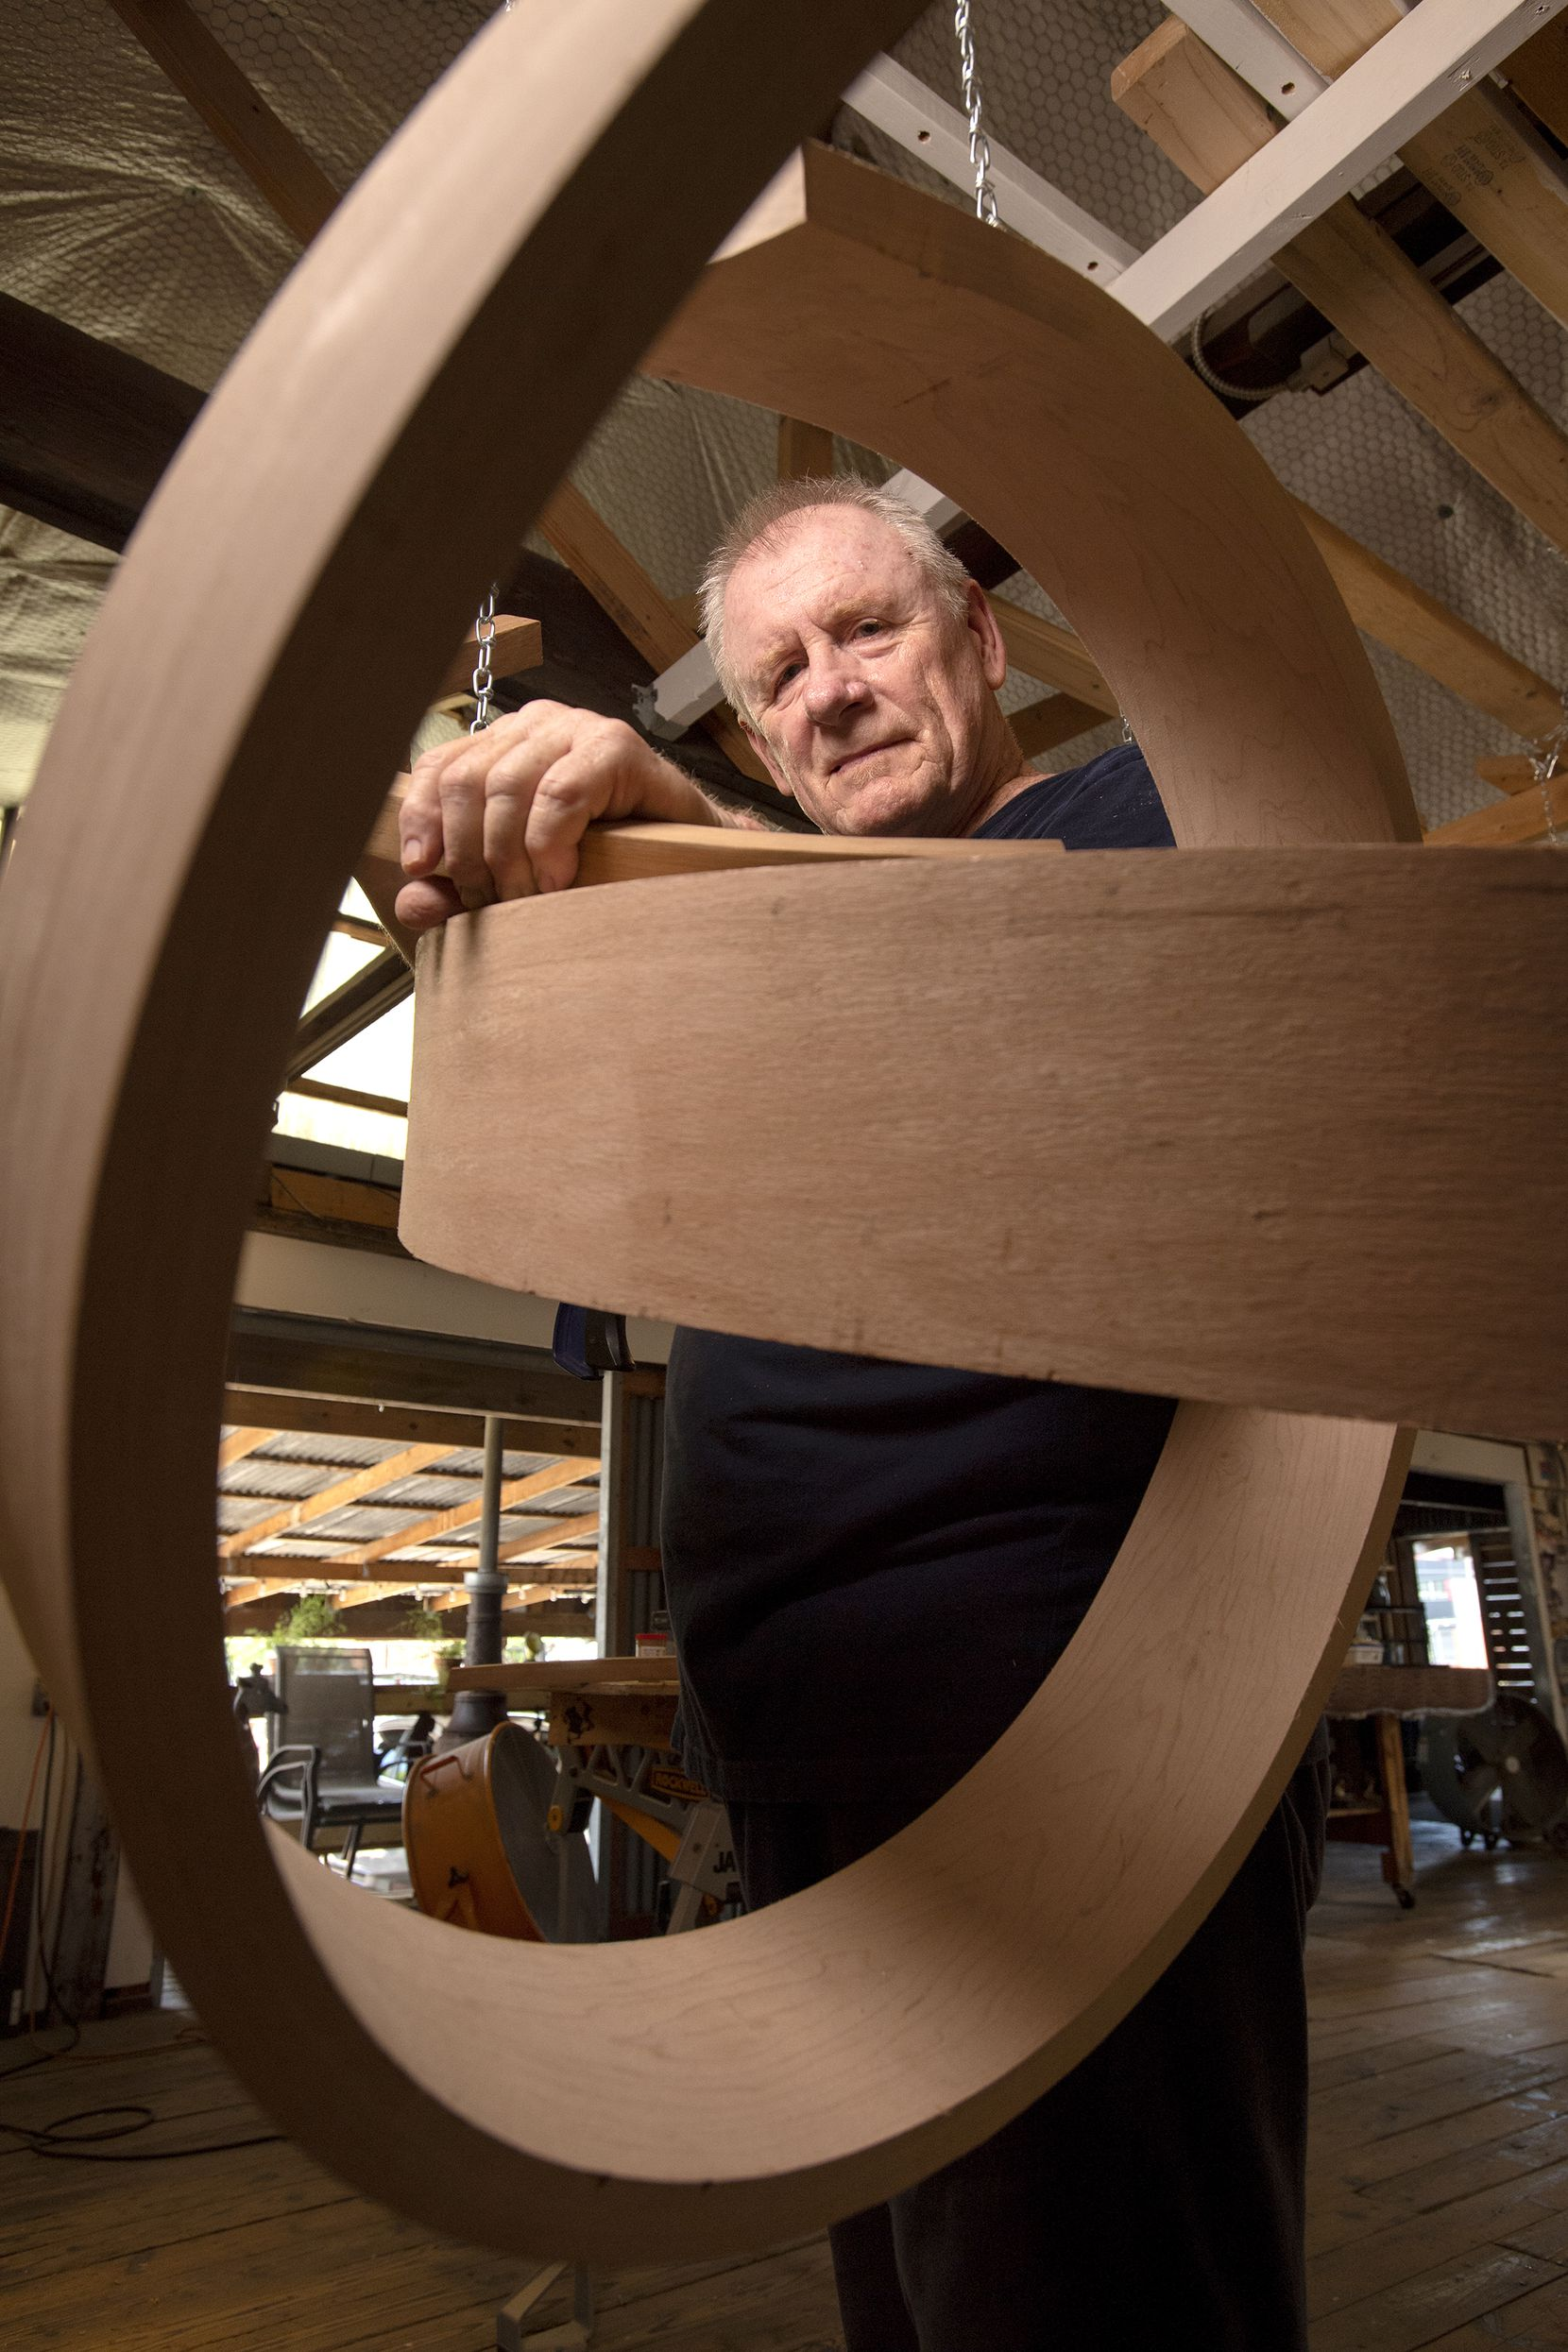 Wood sculptor Rick Maxwell poses with an unfinished sculpture.